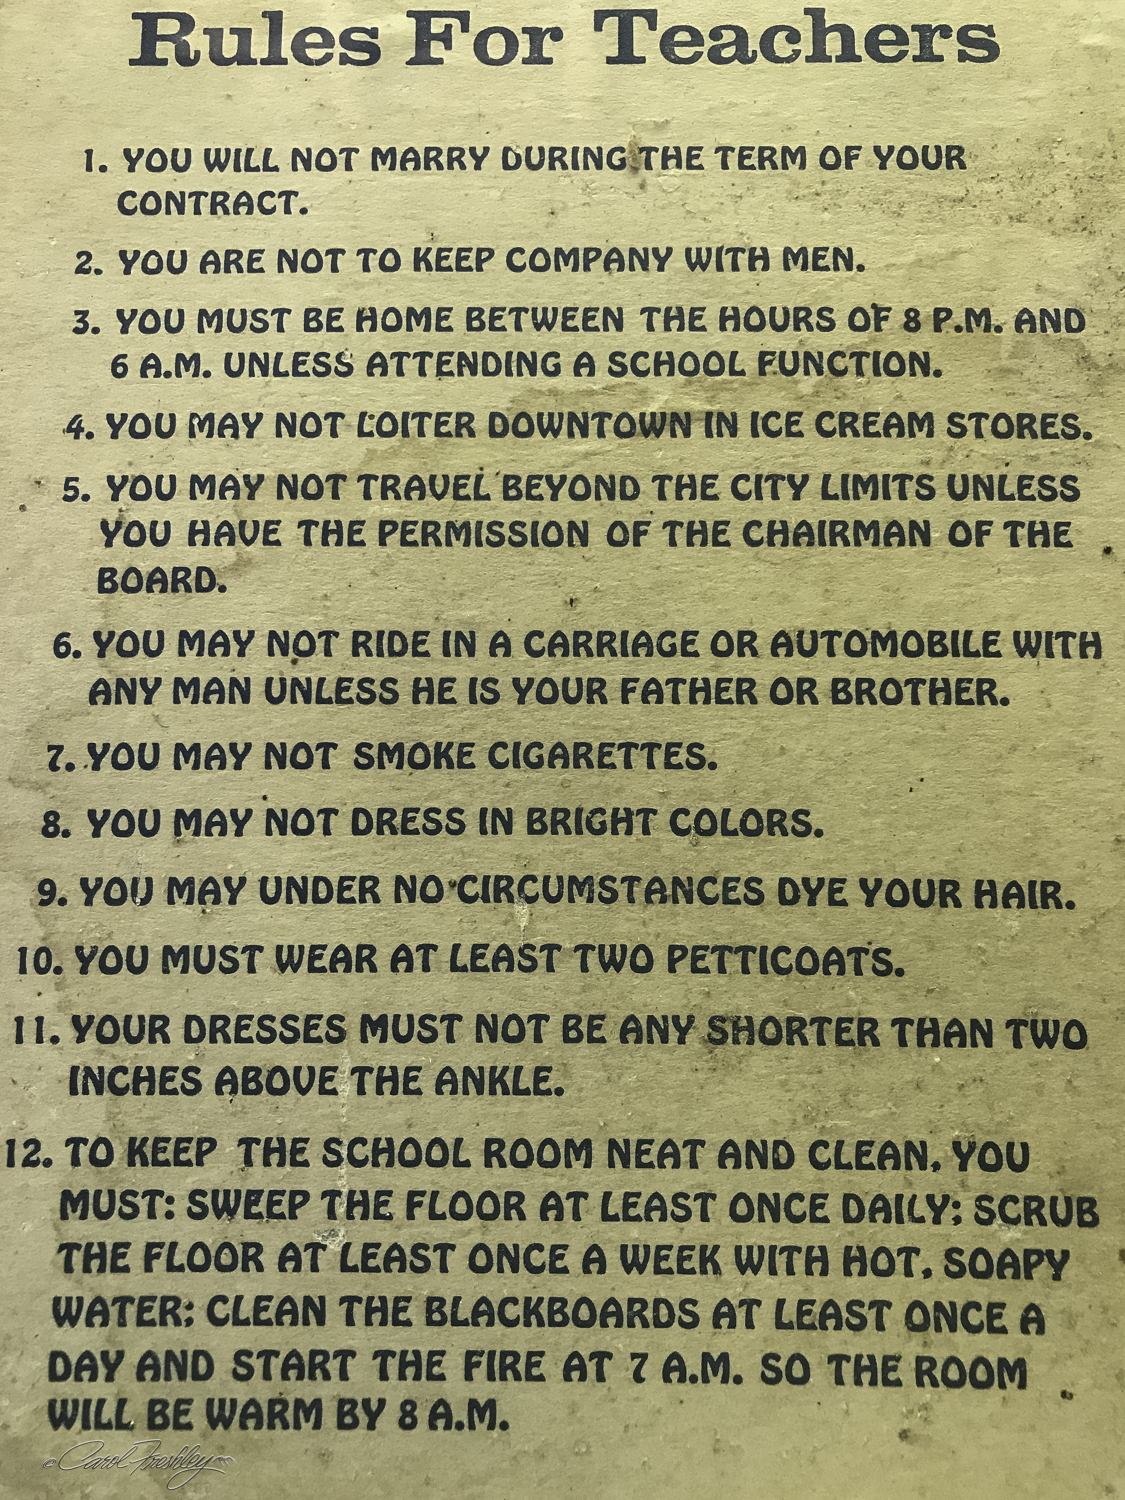 Not sure this is a legitimate rule list.